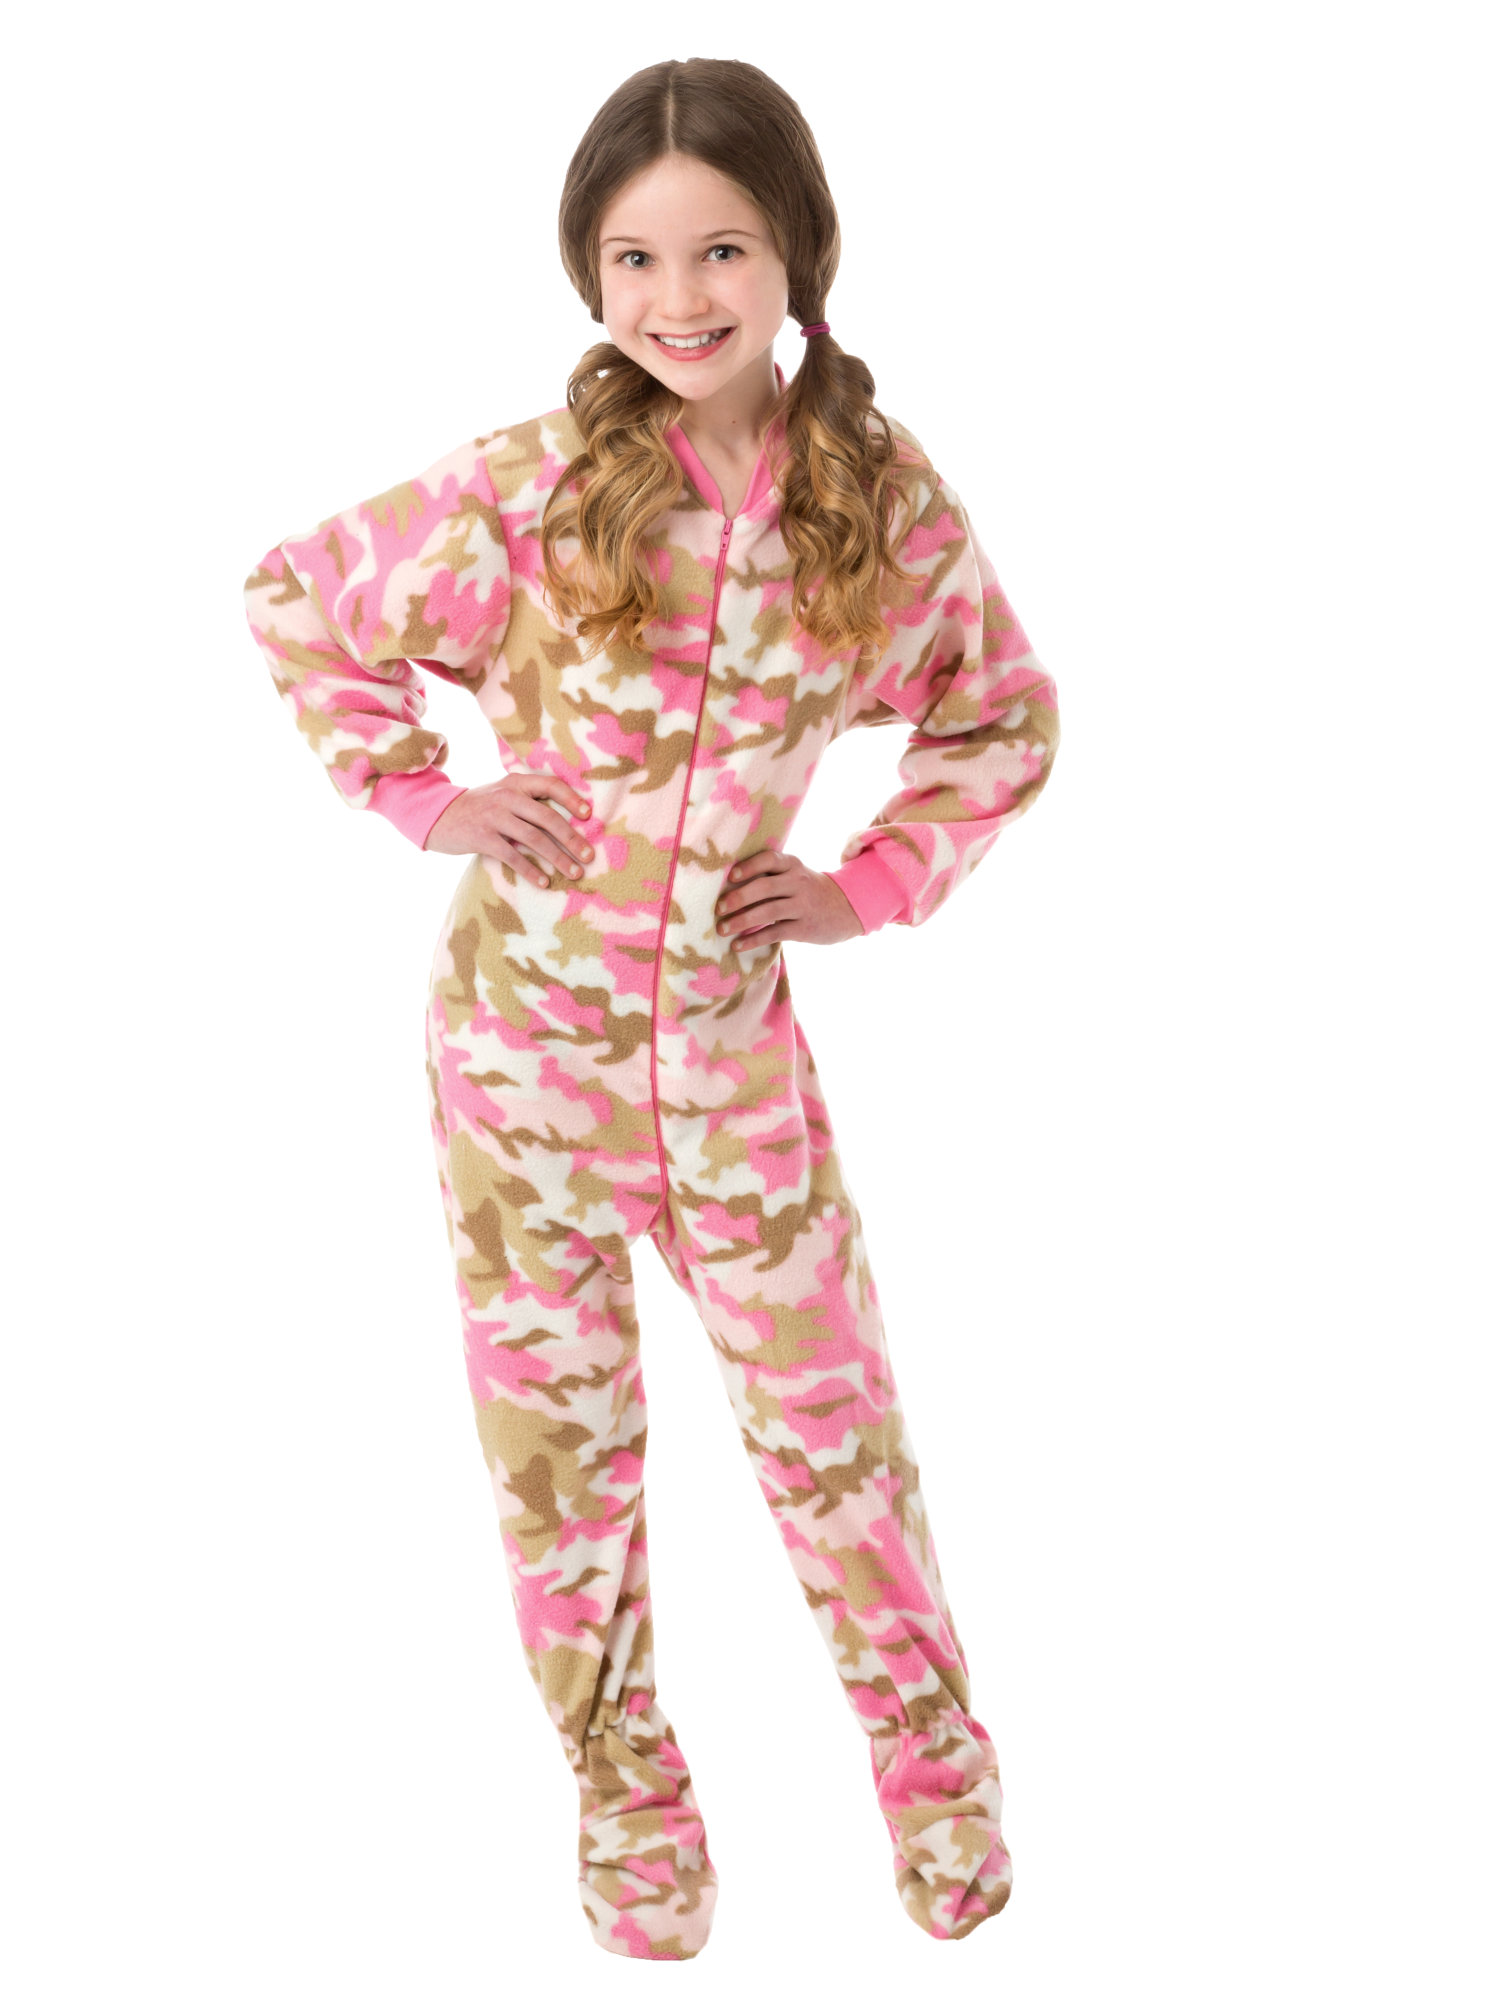 41475a9a11 Big Feet Pajamas